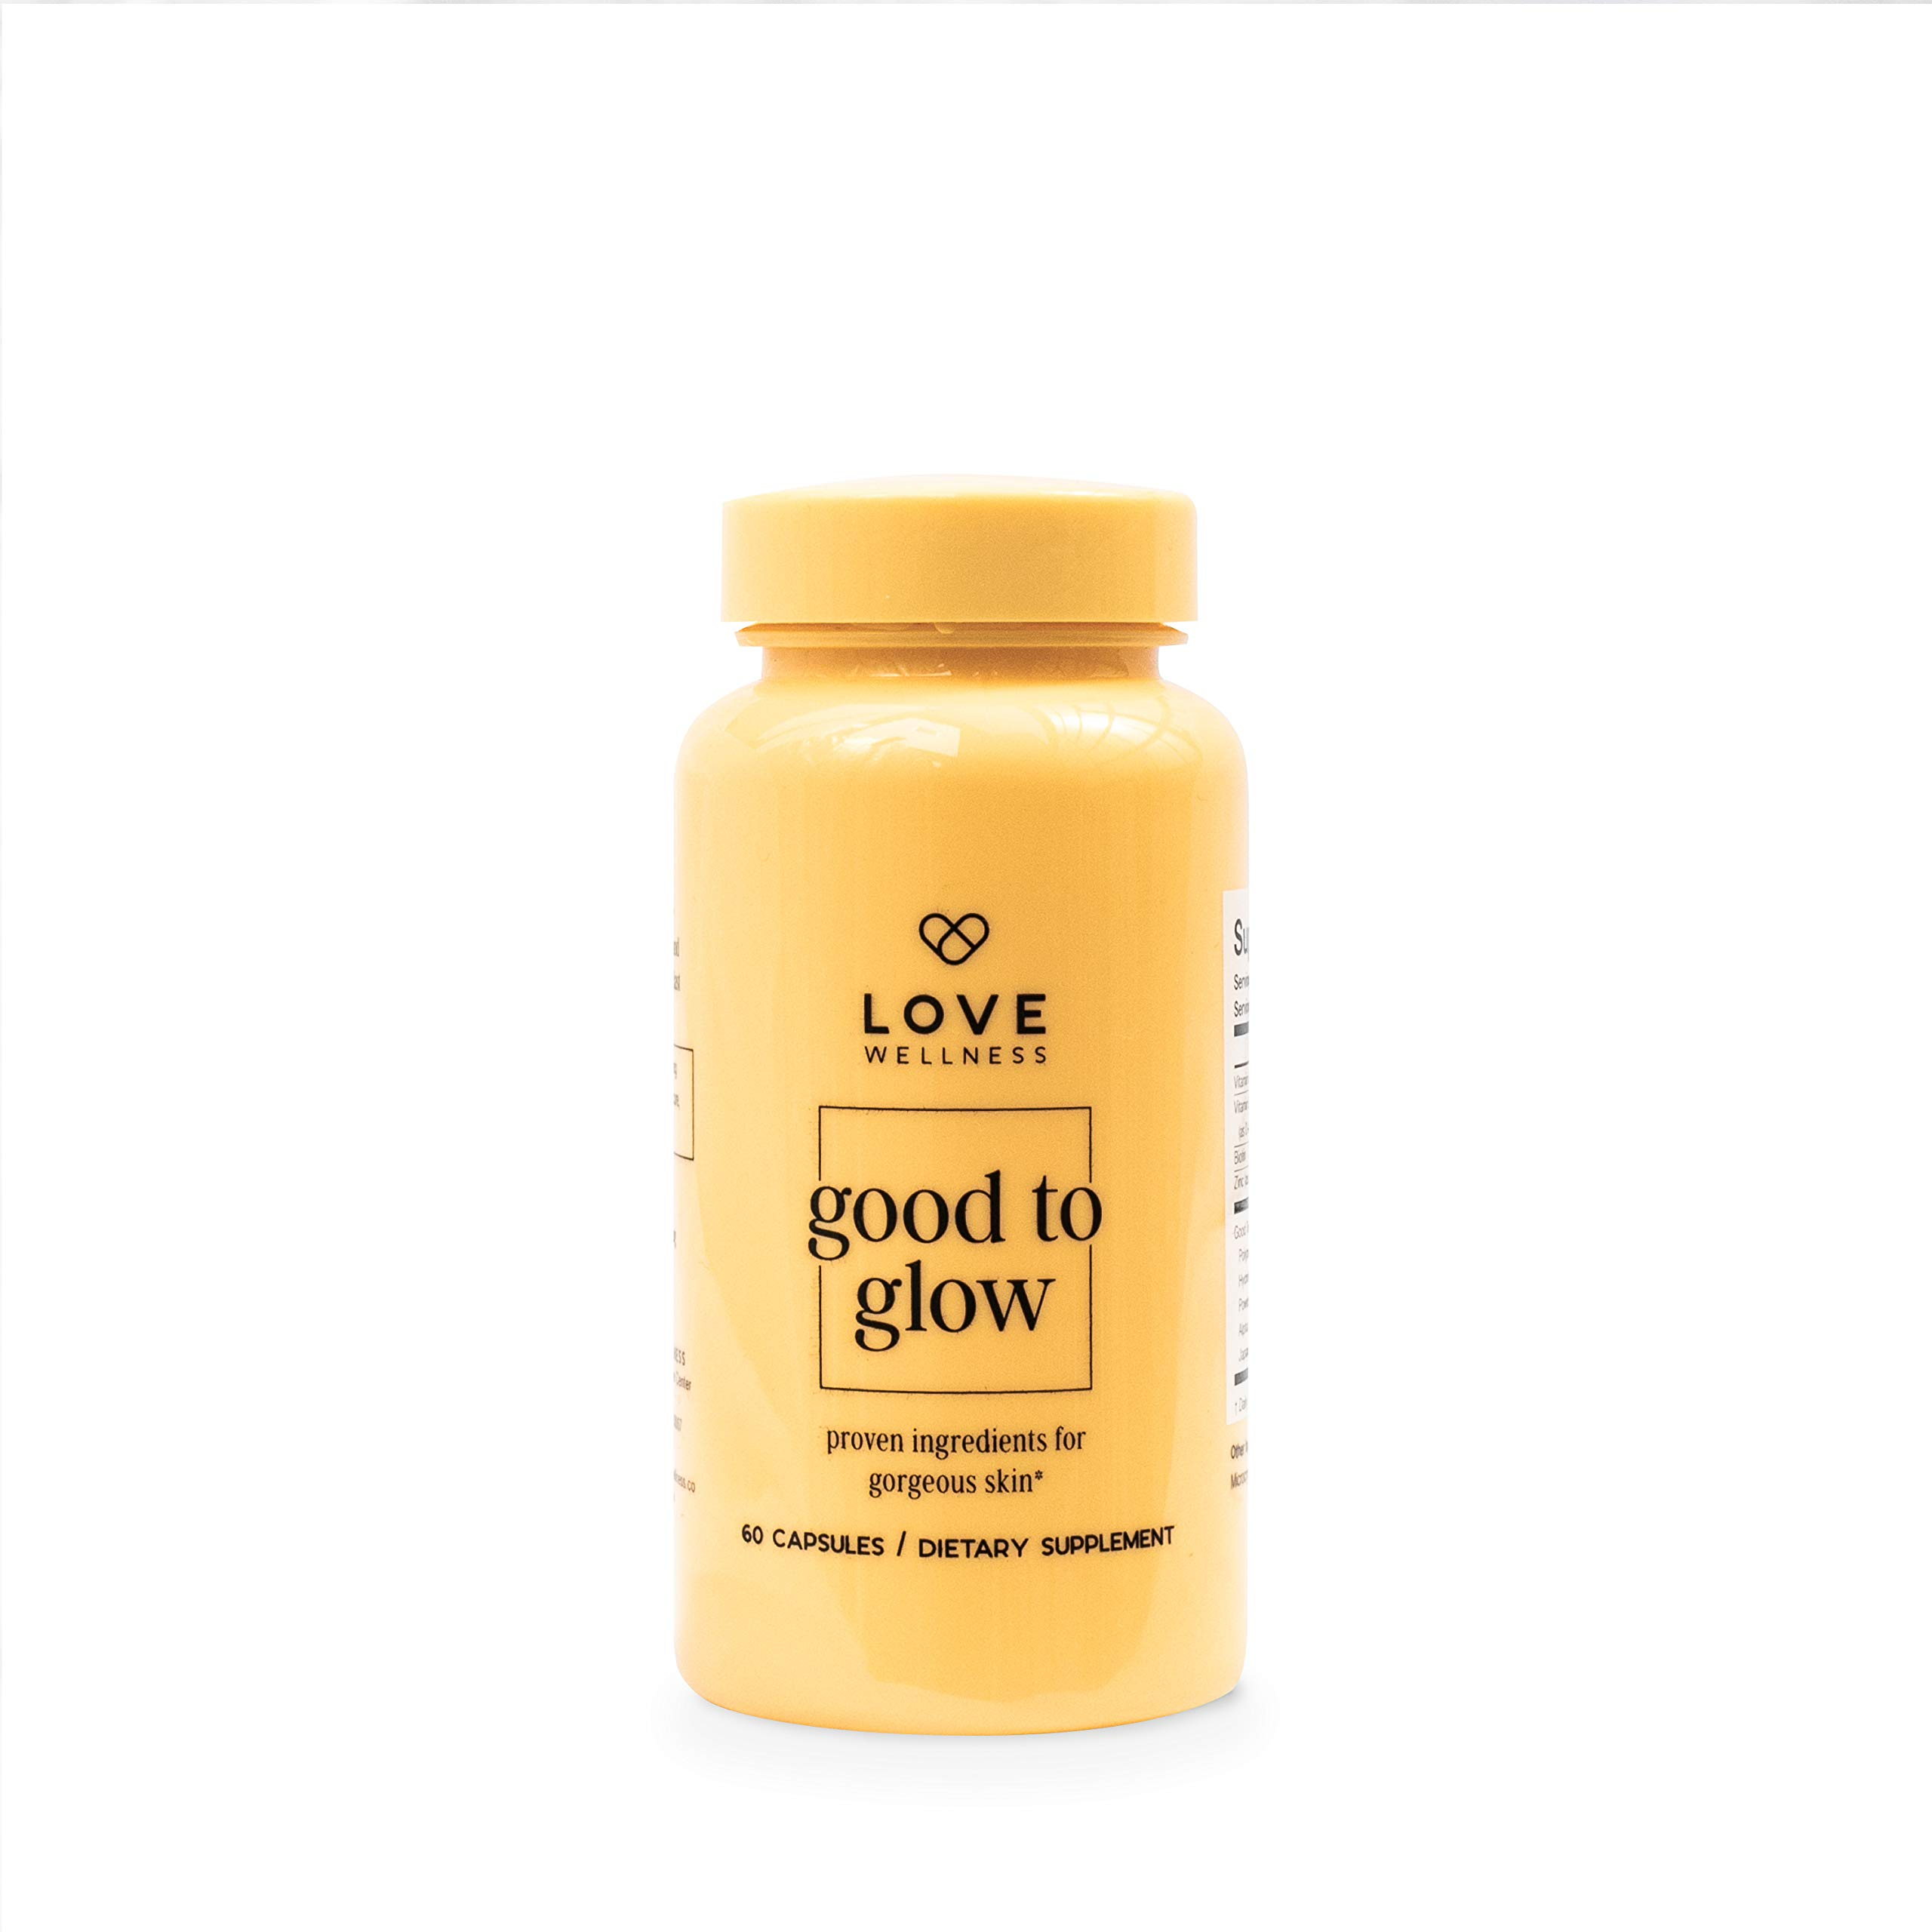 Love Wellness- Good to Glow, Healthy Skin Supplement for Glowing Skin